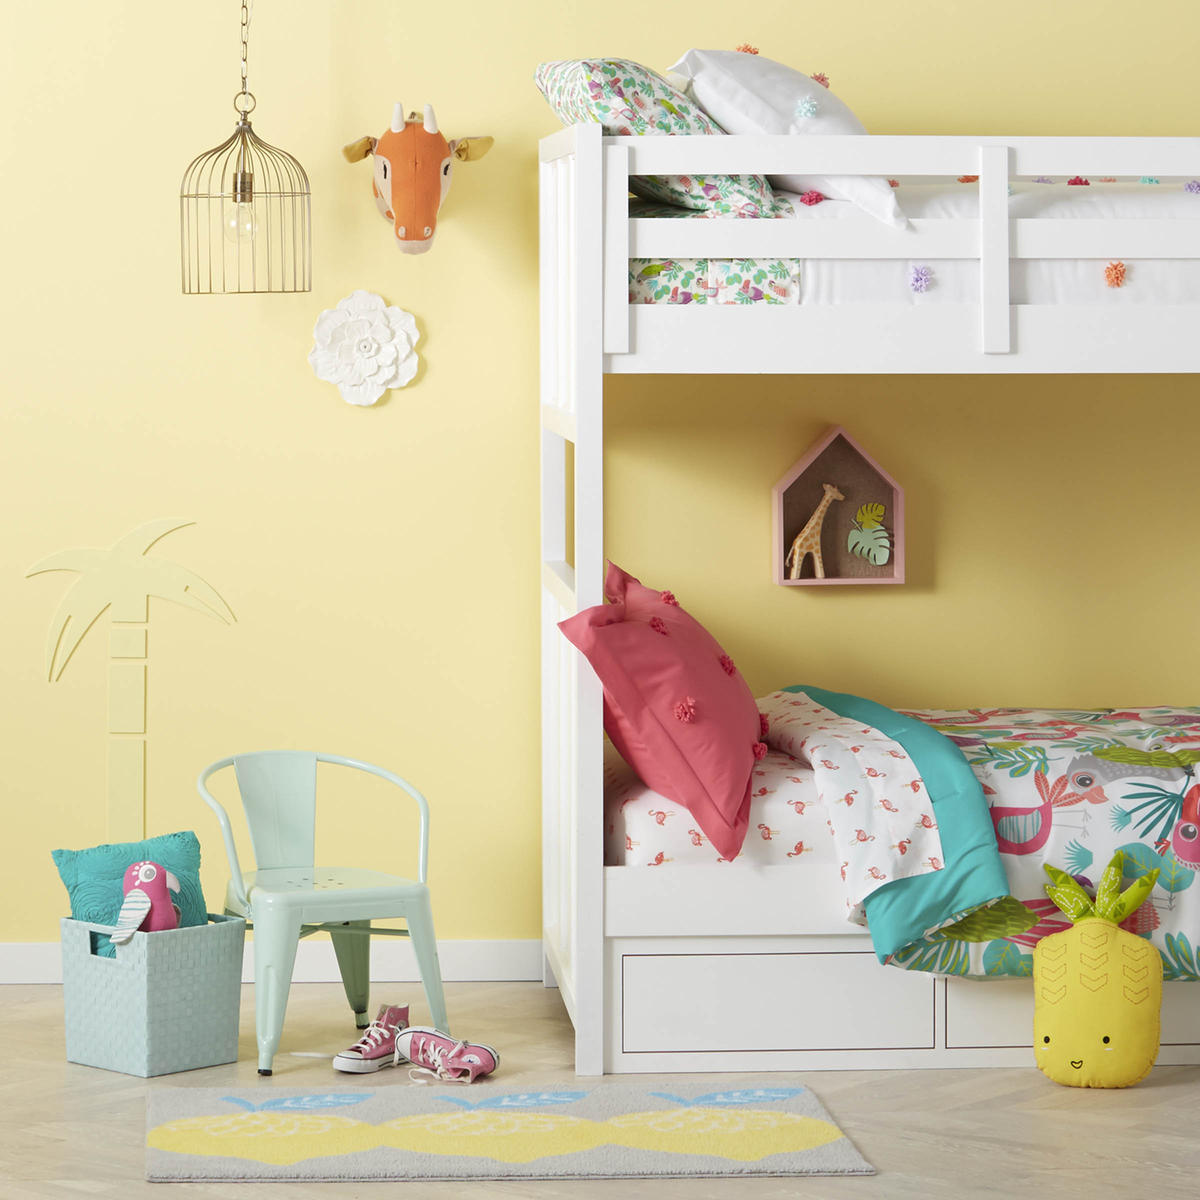 cozy up to target's new pillowfort kids decor collection